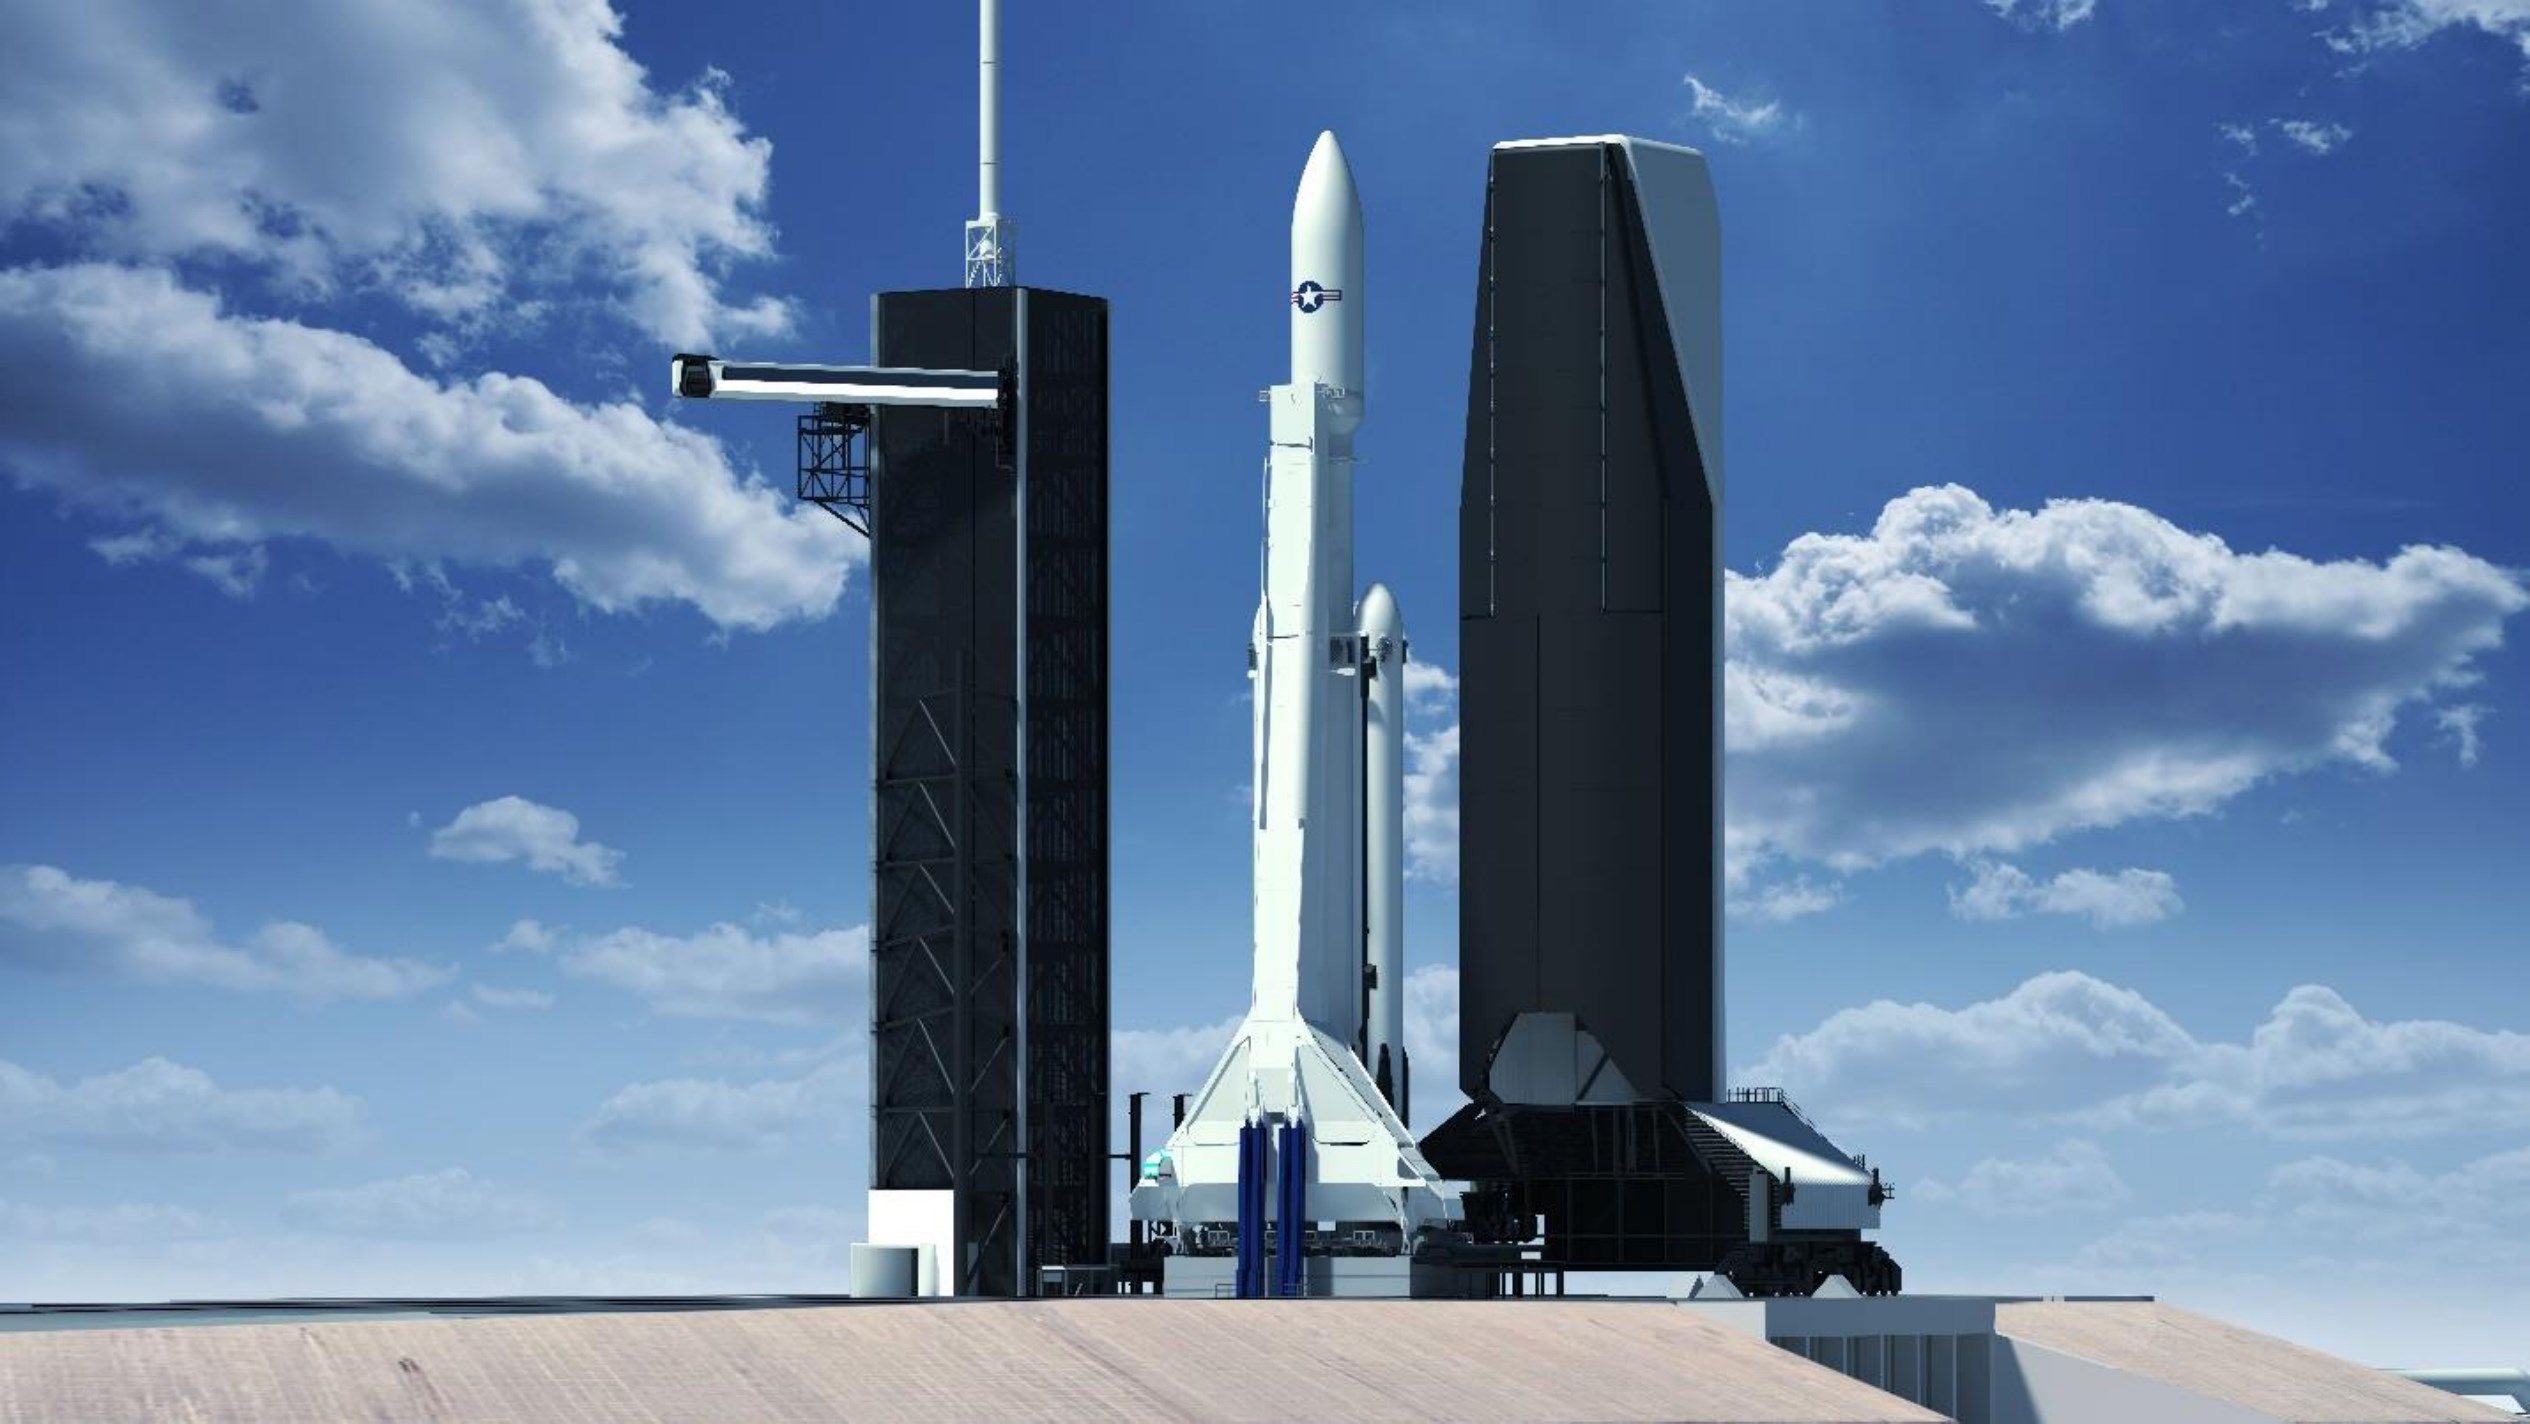 Pad 39A mobile service tower renders (SpaceX) Falcon Heavy stretched fairing 1